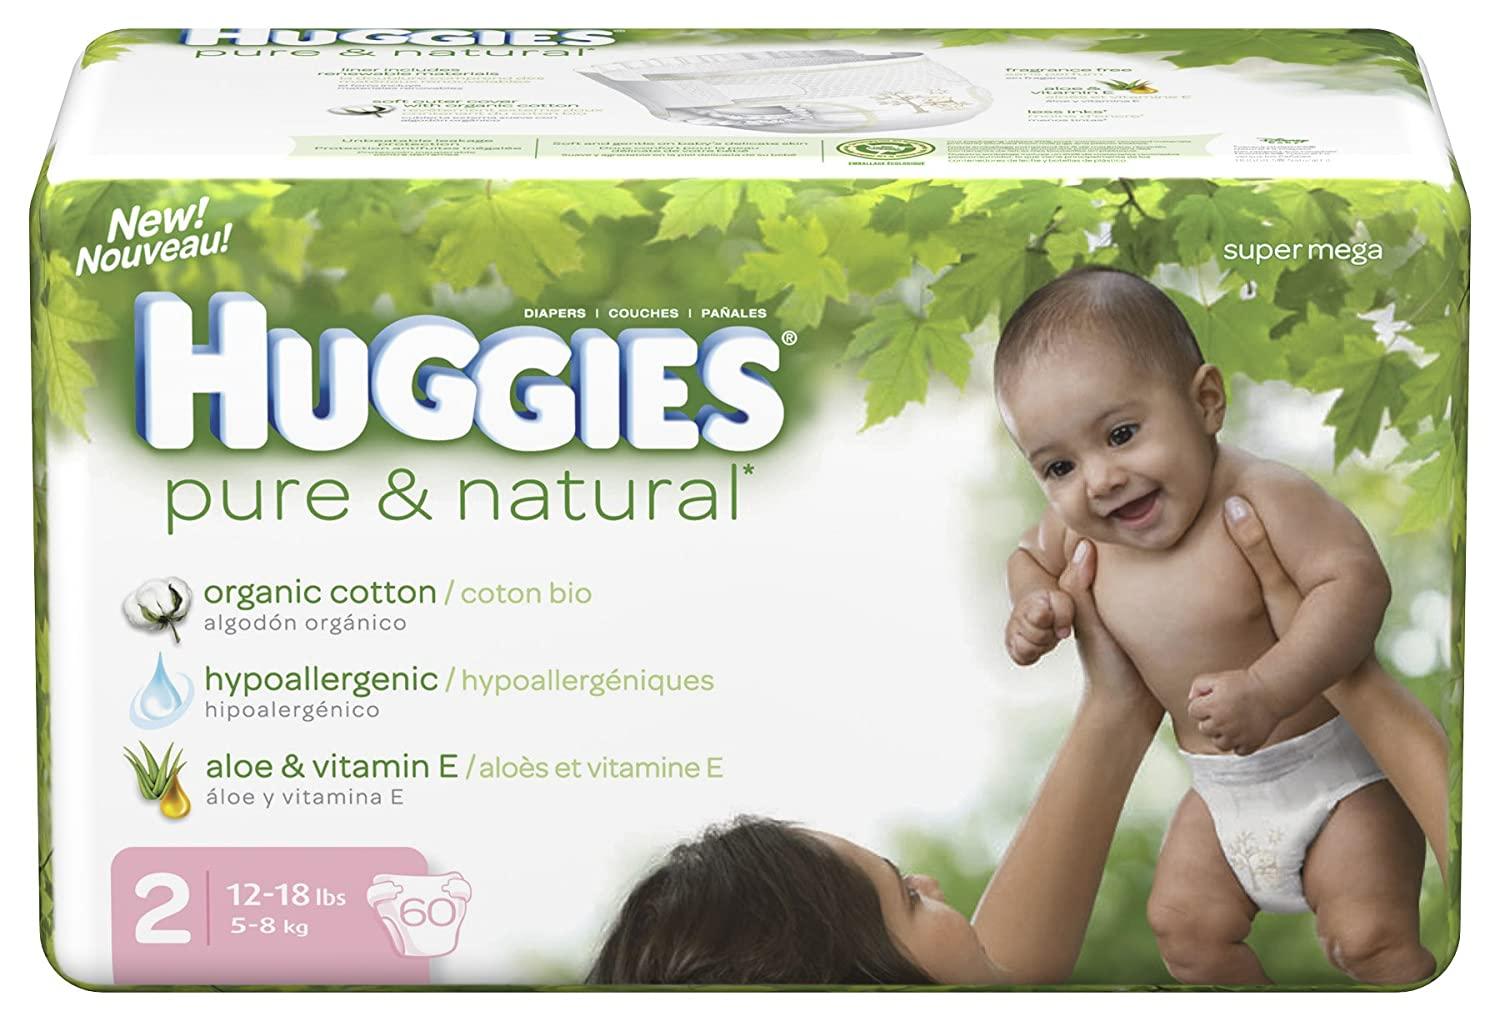 Amazon.com: Huggies Pure & Natural Diapers, Size 2, 60-Count (Pack of 2): Health & Personal Care